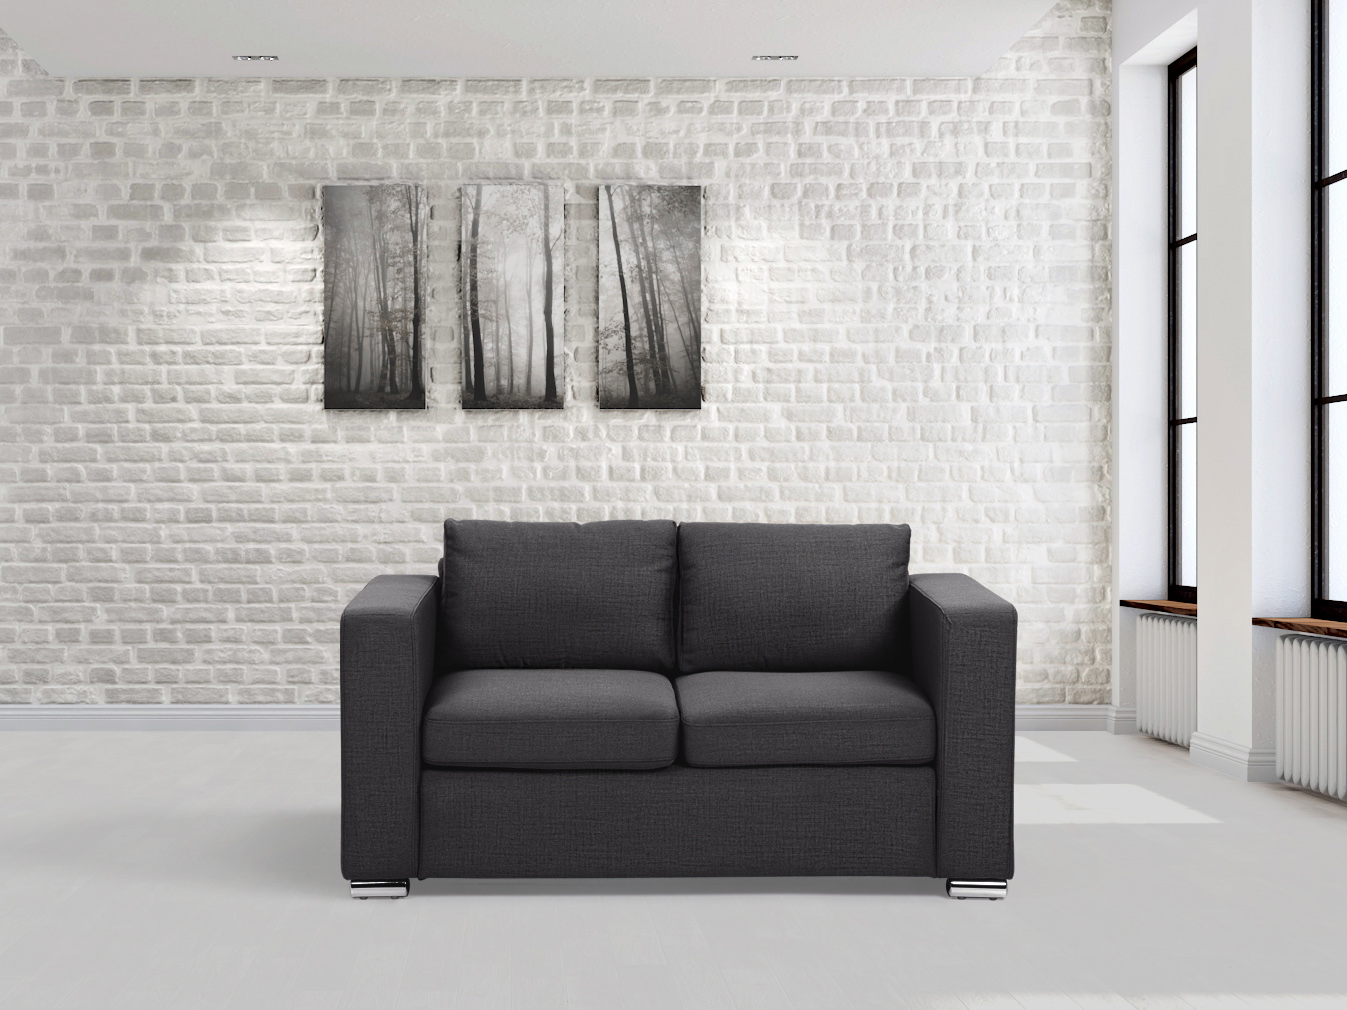 Image Is Loading Fabric-sofa-loveseat-two-seater-living-room-sofa-